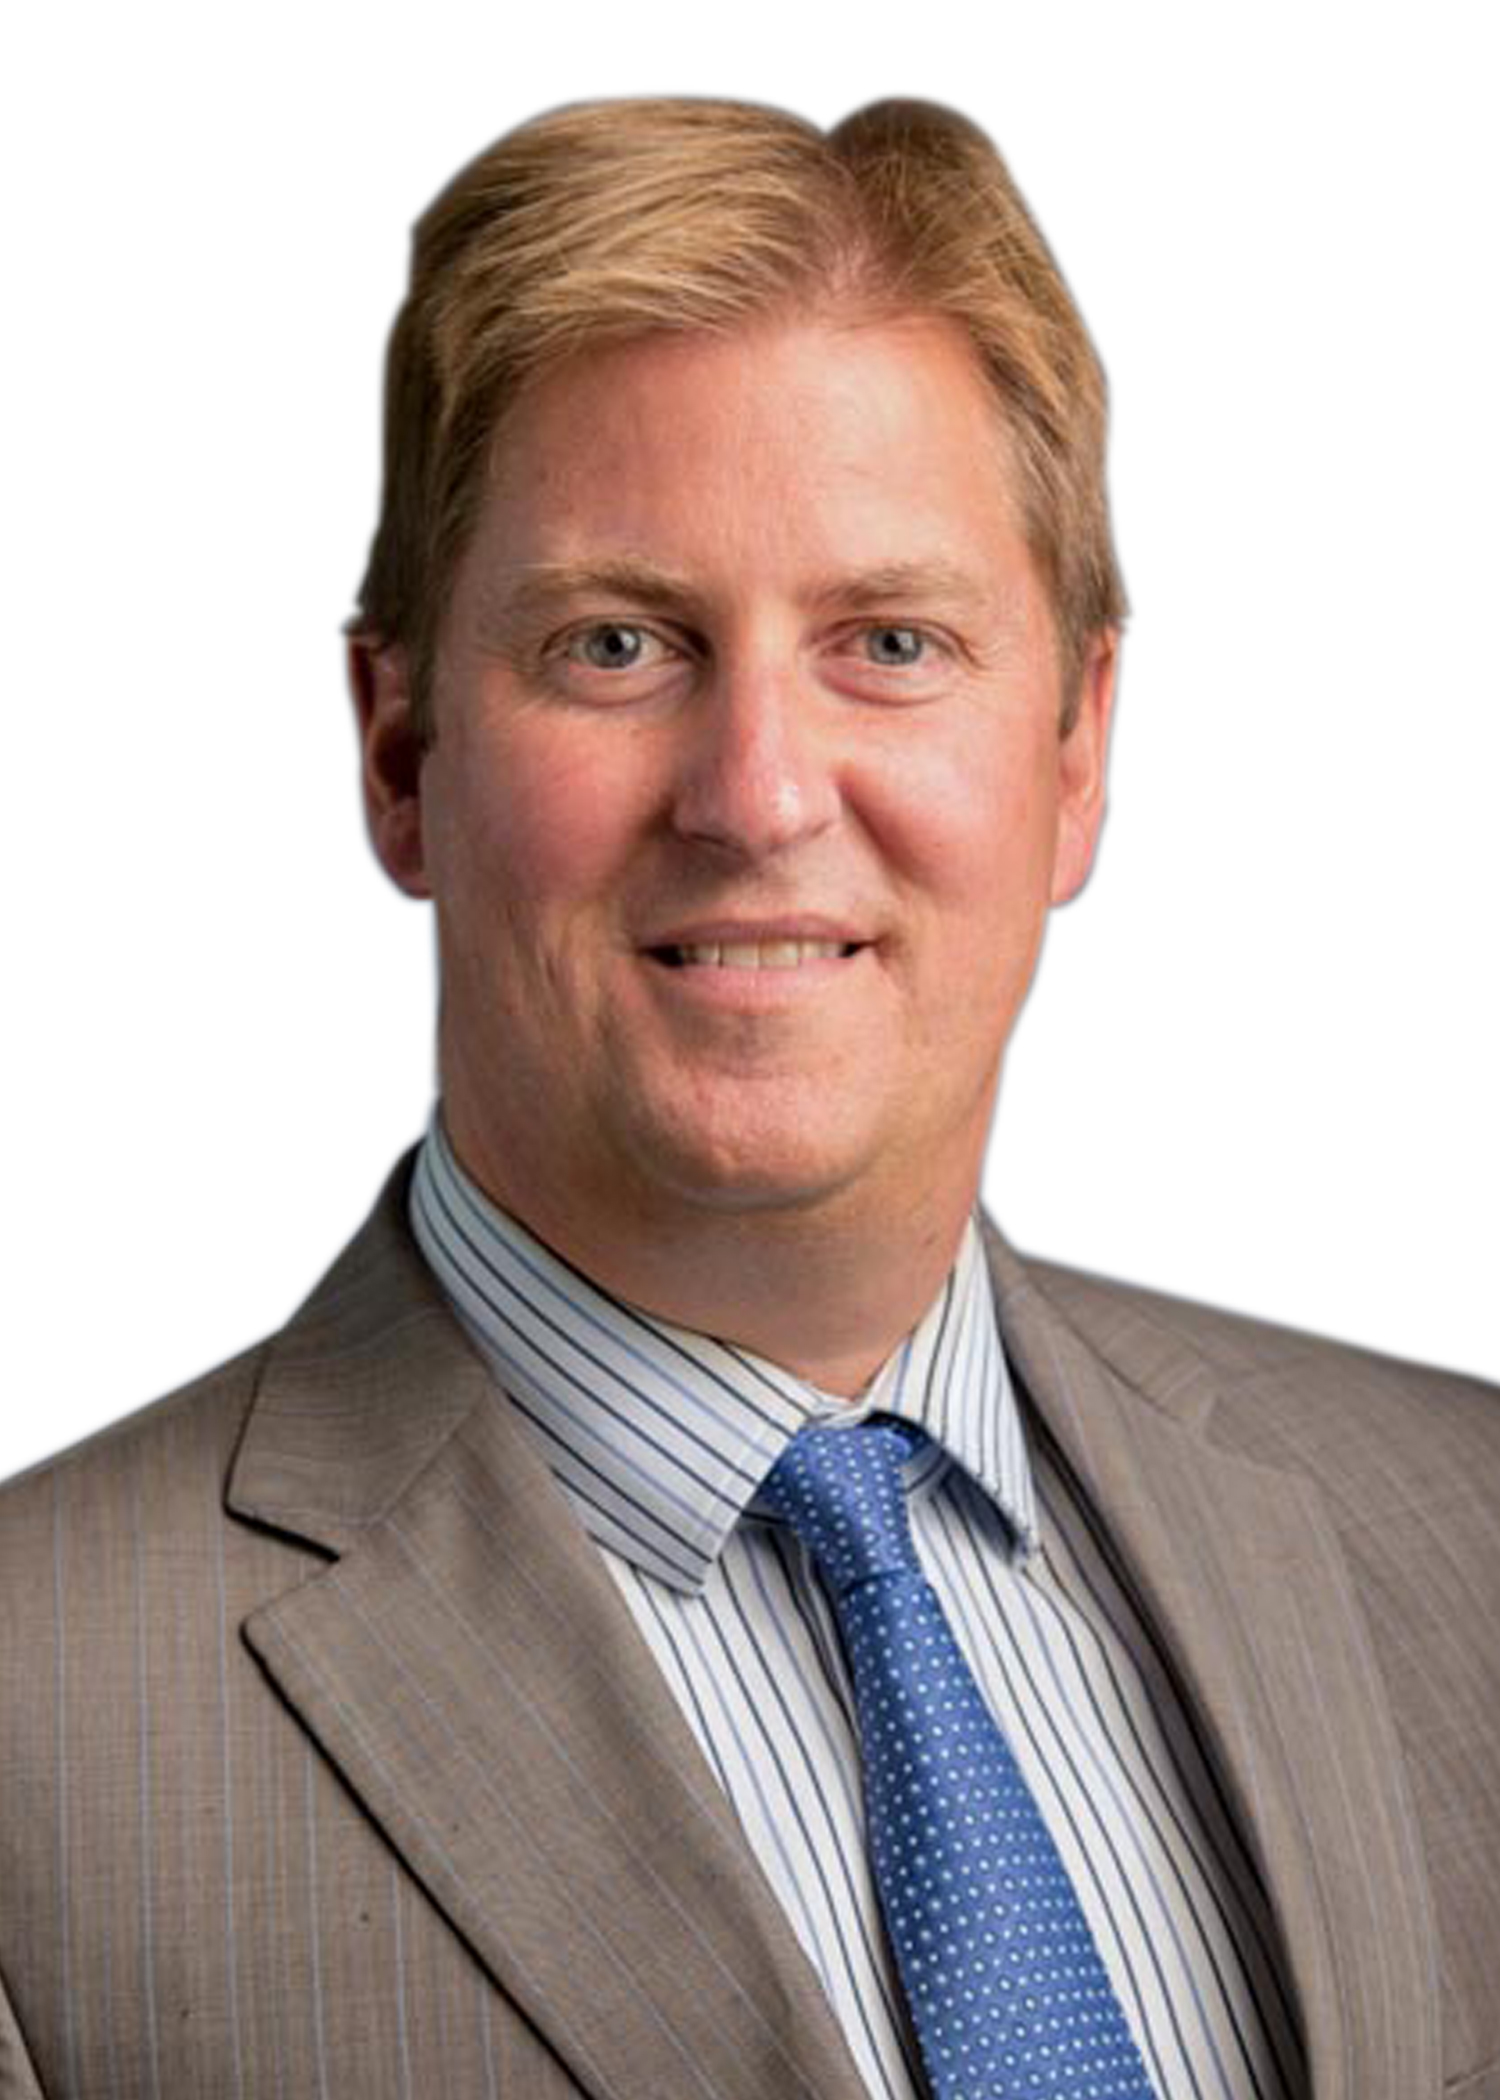 Luke Gould, Executive Vice-President and Chief Financial Officer